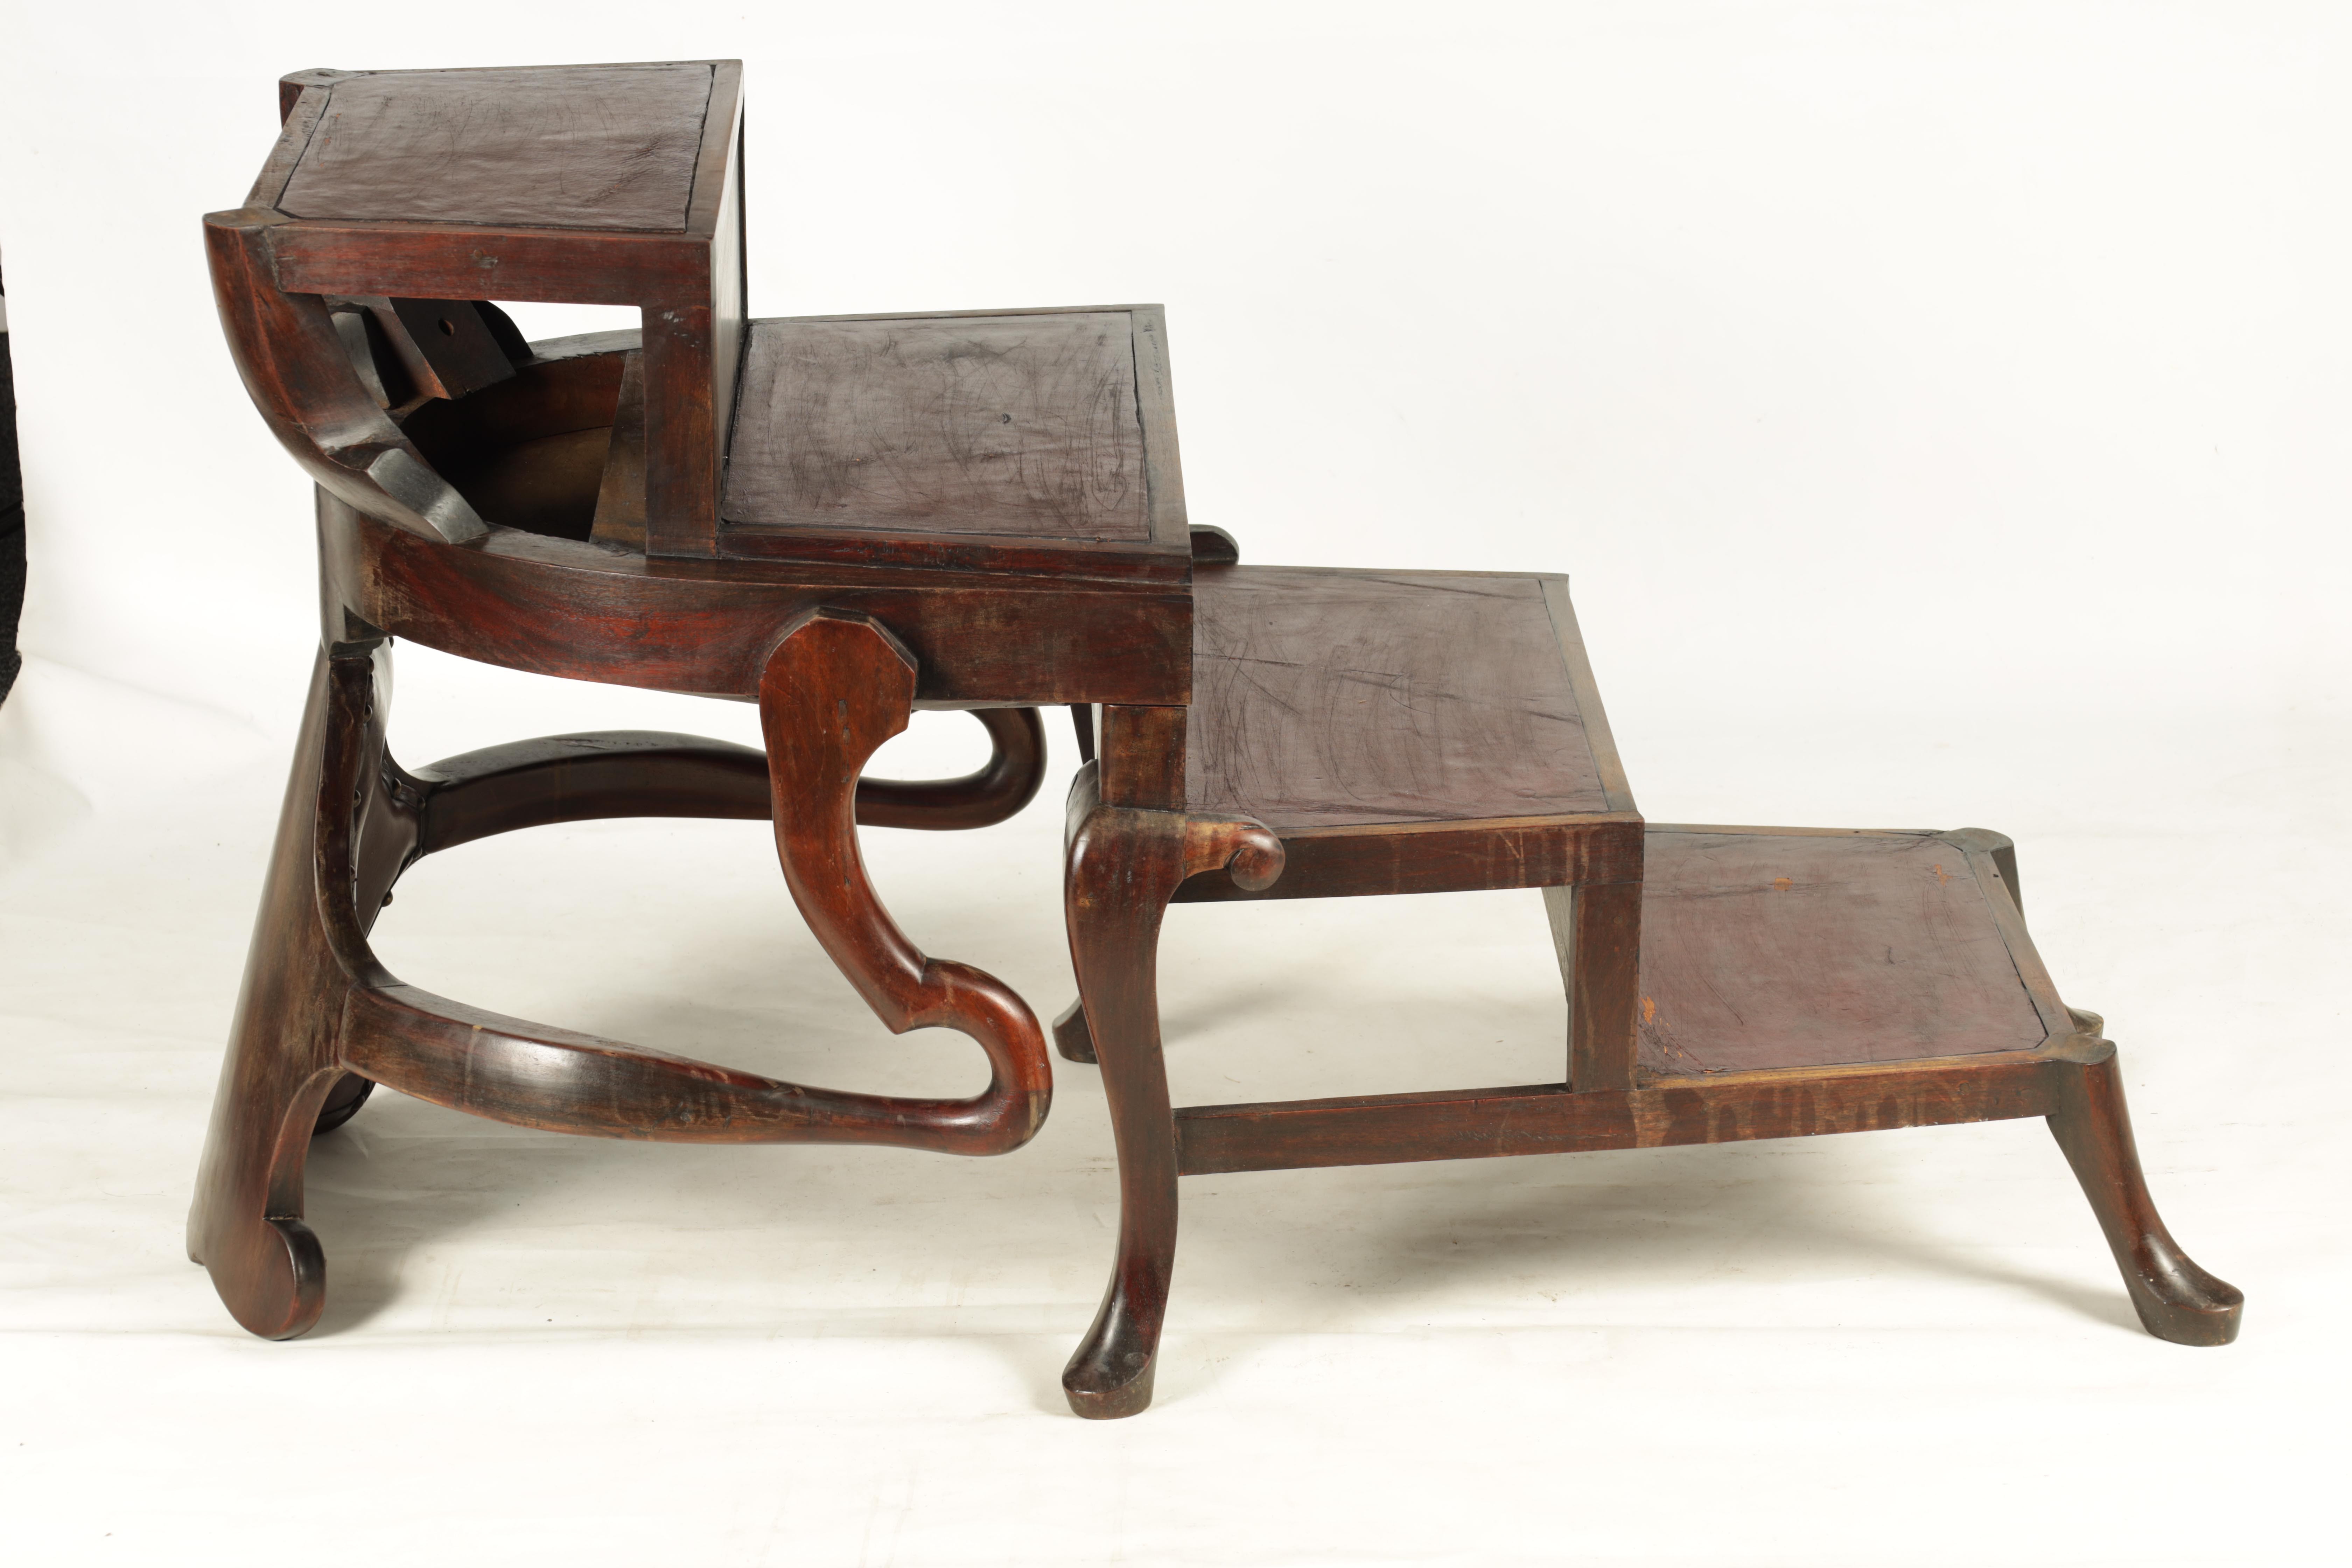 A 19TH CENTURY GEORGE II STYLE METAMORPHIC ARMCHAIR/LIBRARY STEPS with shaped back and crook arms - Image 6 of 8